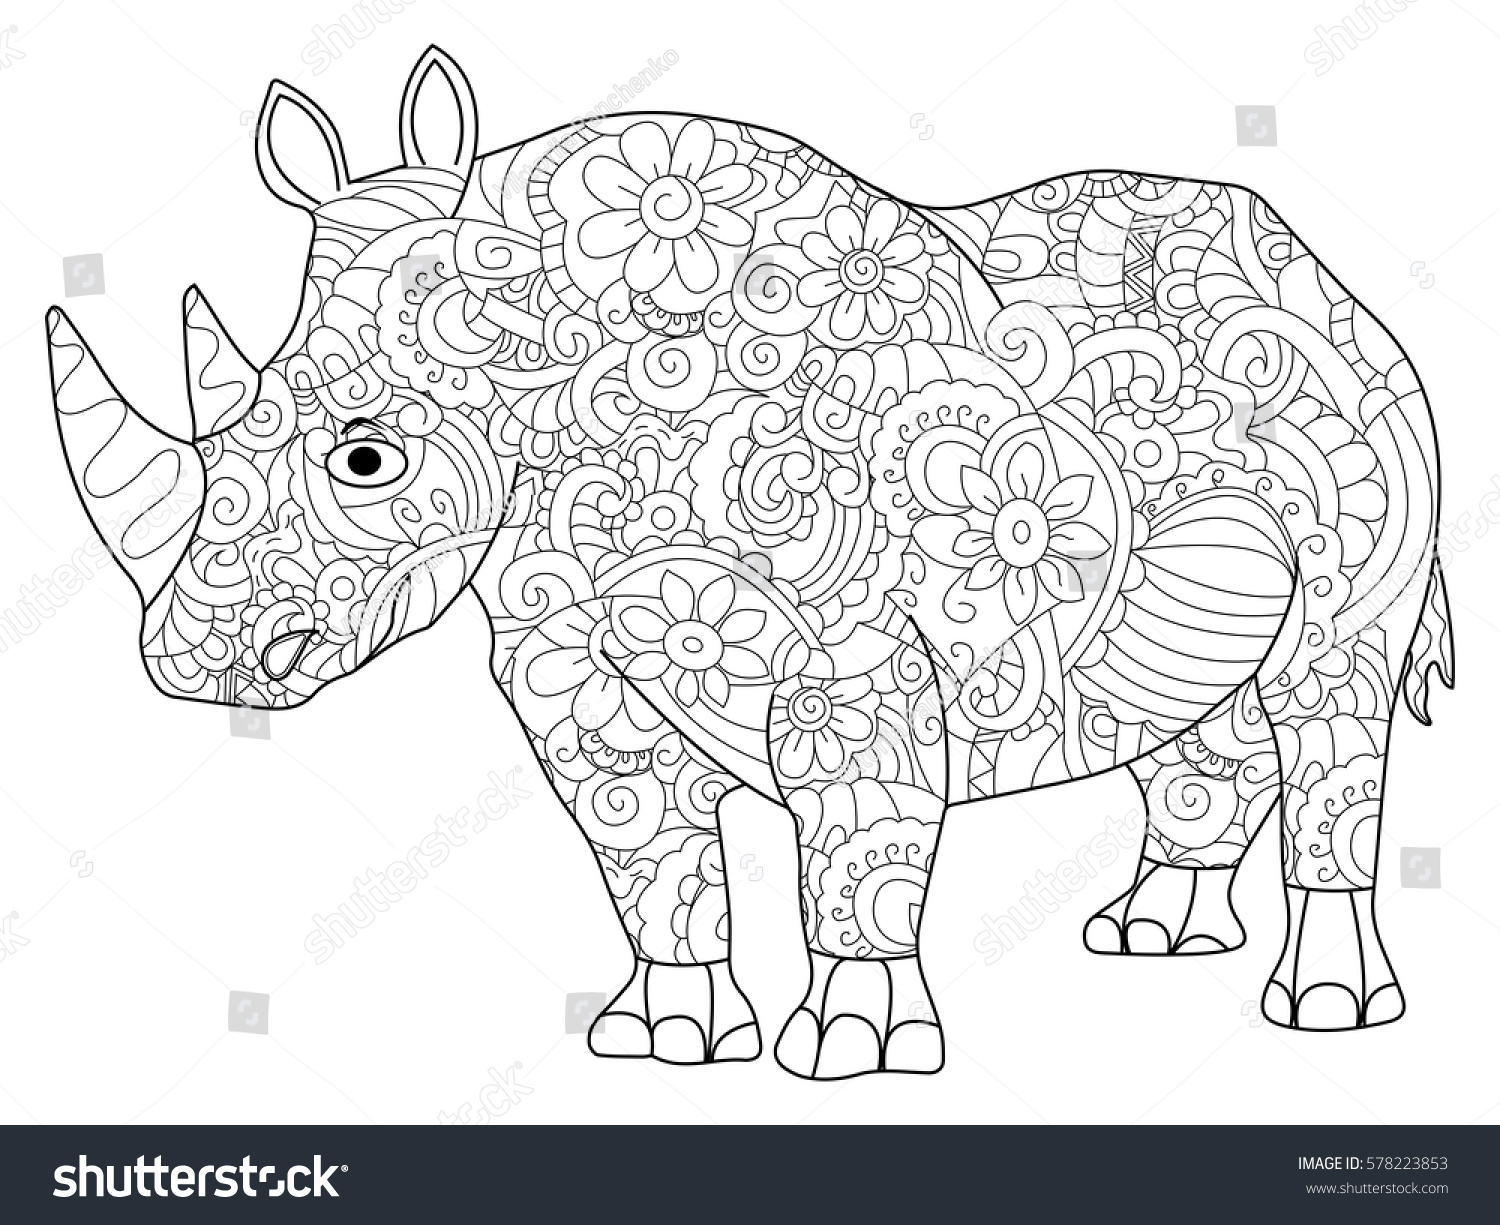 Hippopotamus Animal Coloring Book For Adults Vector Illustration Anti Stress Adult